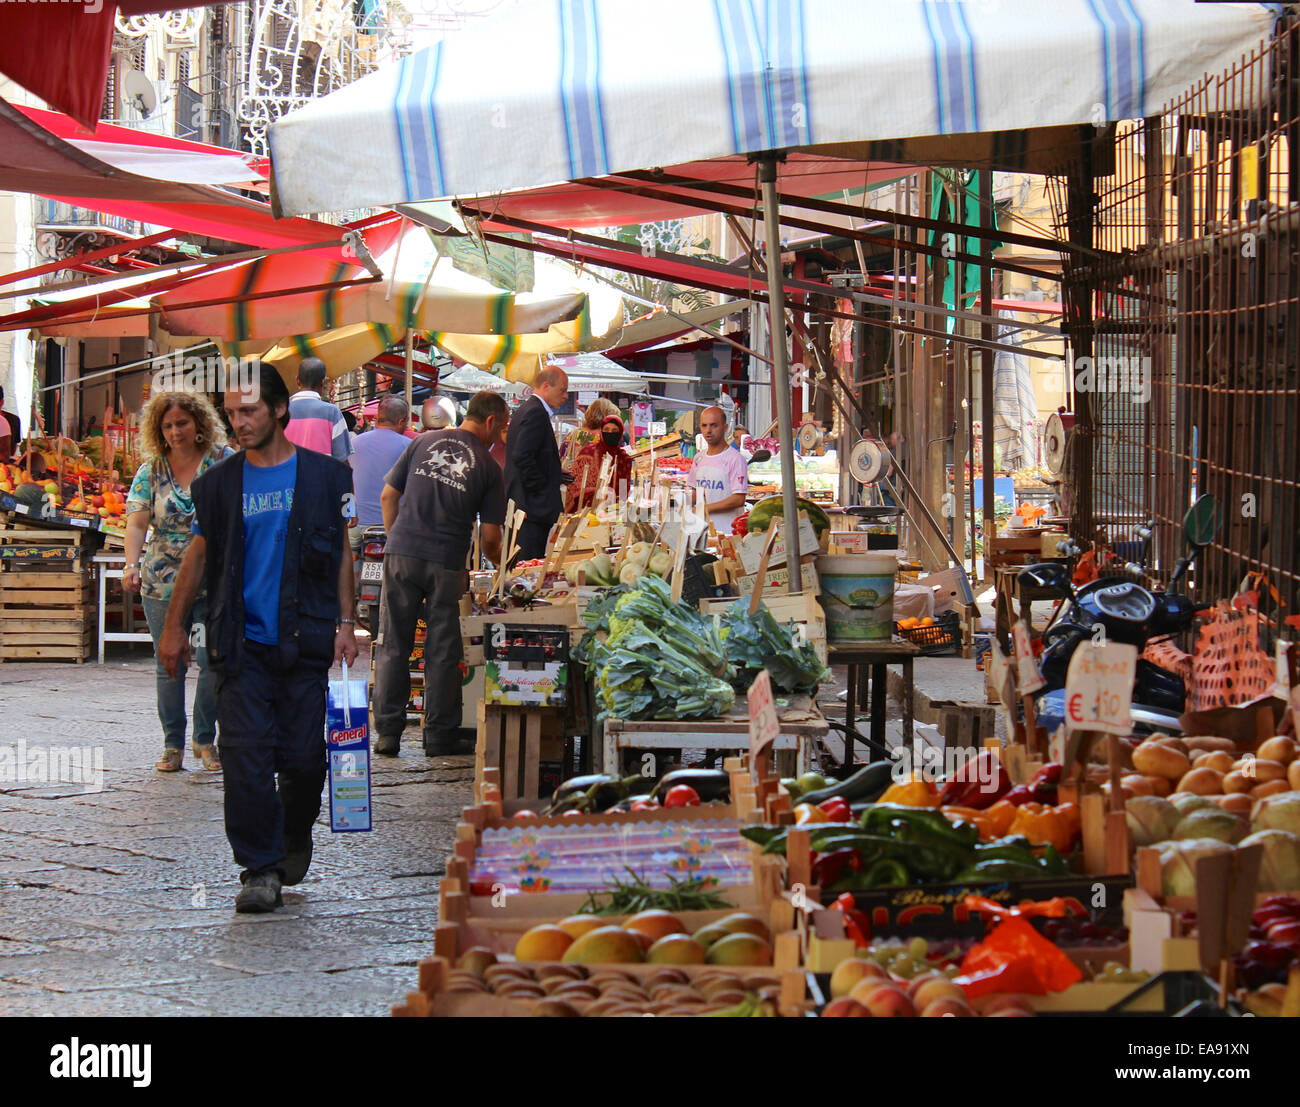 A fruit and vegetable market in a street in Palermo, Sicily - Stock Image